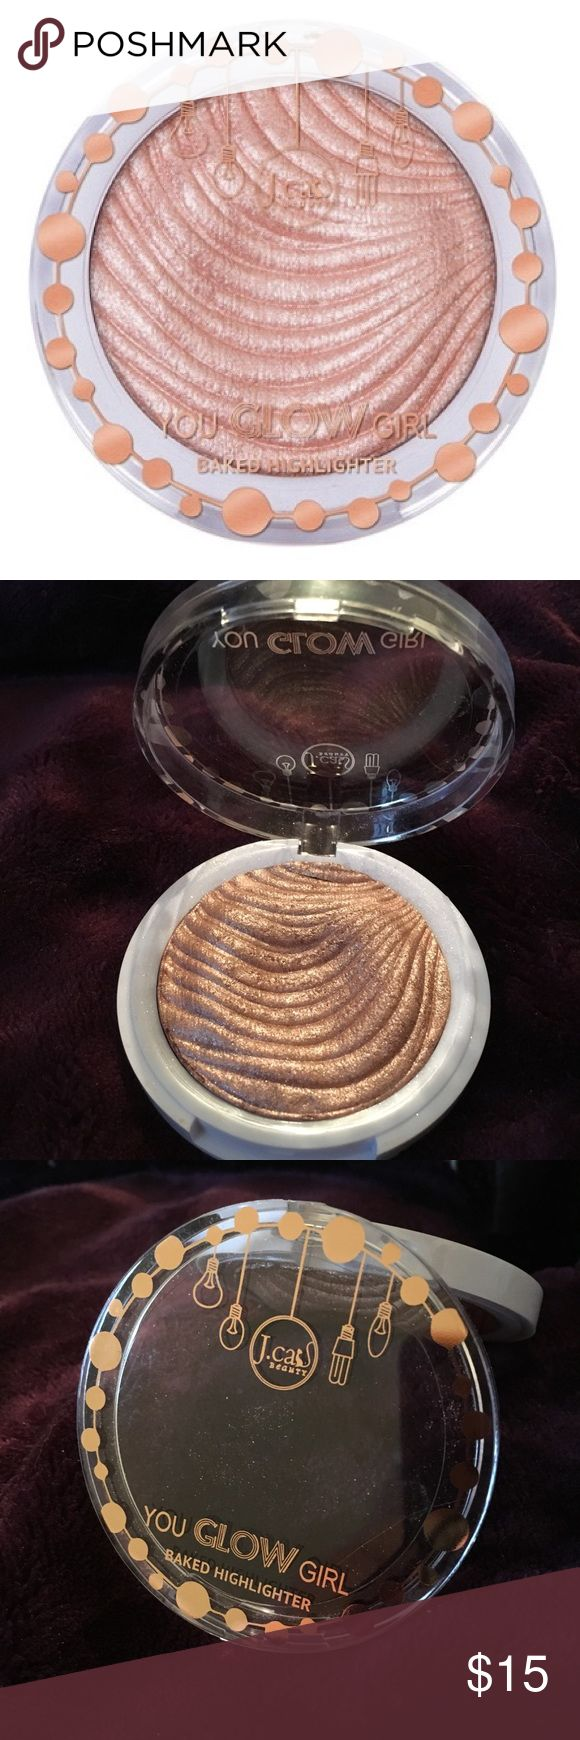 🌸You Glow Girl Baked Highlighter🌸 **Color: Pink Goddess**  Details- J.Cat Beauty's multi-dimensional baked formula in the You Glow Girl Baked Highlighter brings instant glow all day long due to high intense shimmer pigment. It is designed to complement all skin tones and all skin types. The smooth texture blends effortlessly and gives the perfect luminous finish that complete your look. [Free of phthalates, SLS, triclosan, propylene glycol and animal ingredients. Cruelty free.] J.CAT